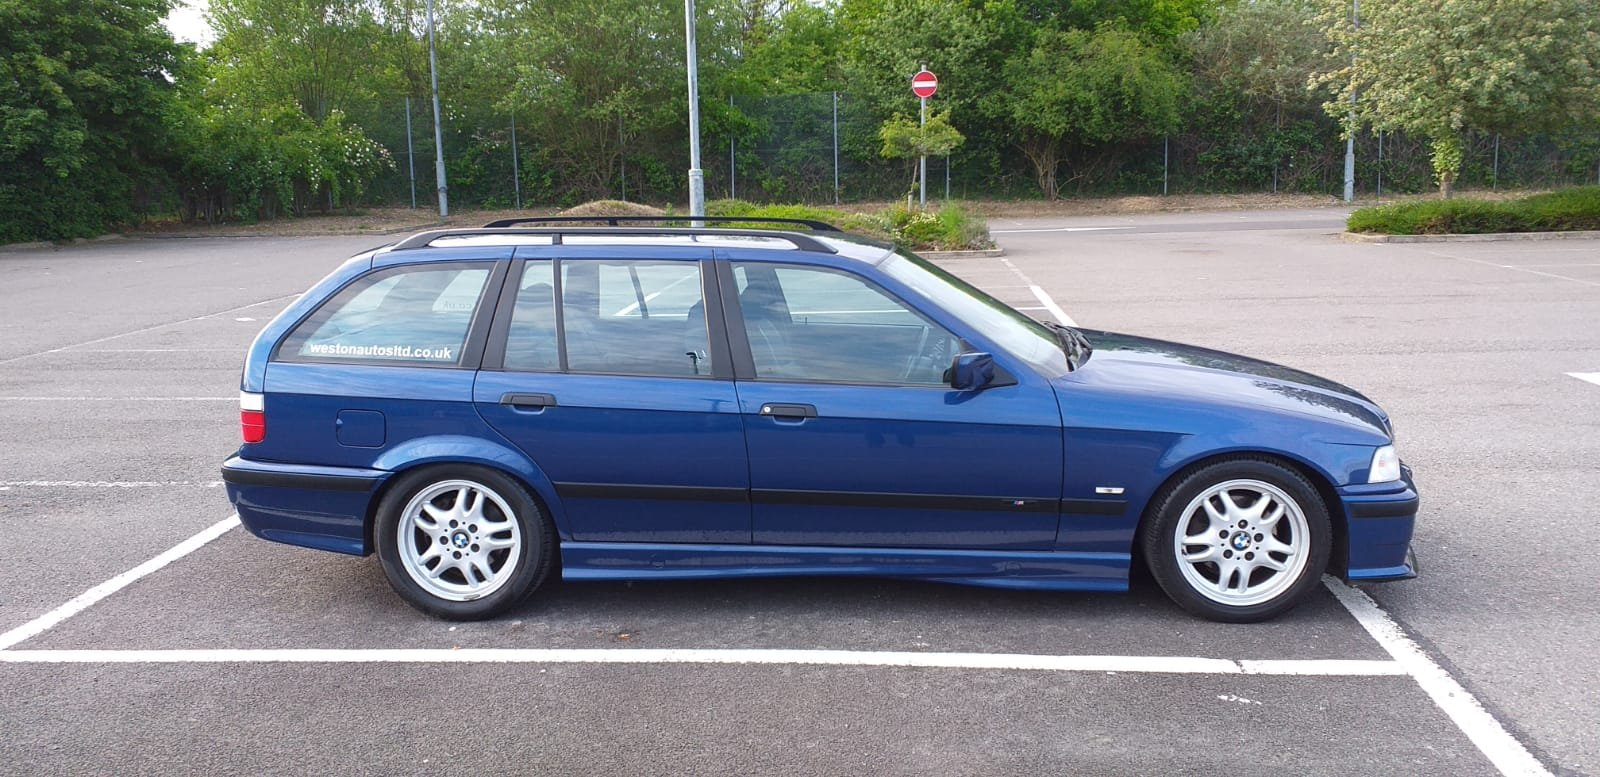 1999 BMW e36 Touring M Sport Avus Blue 73k For Sale (picture 3 of 6)